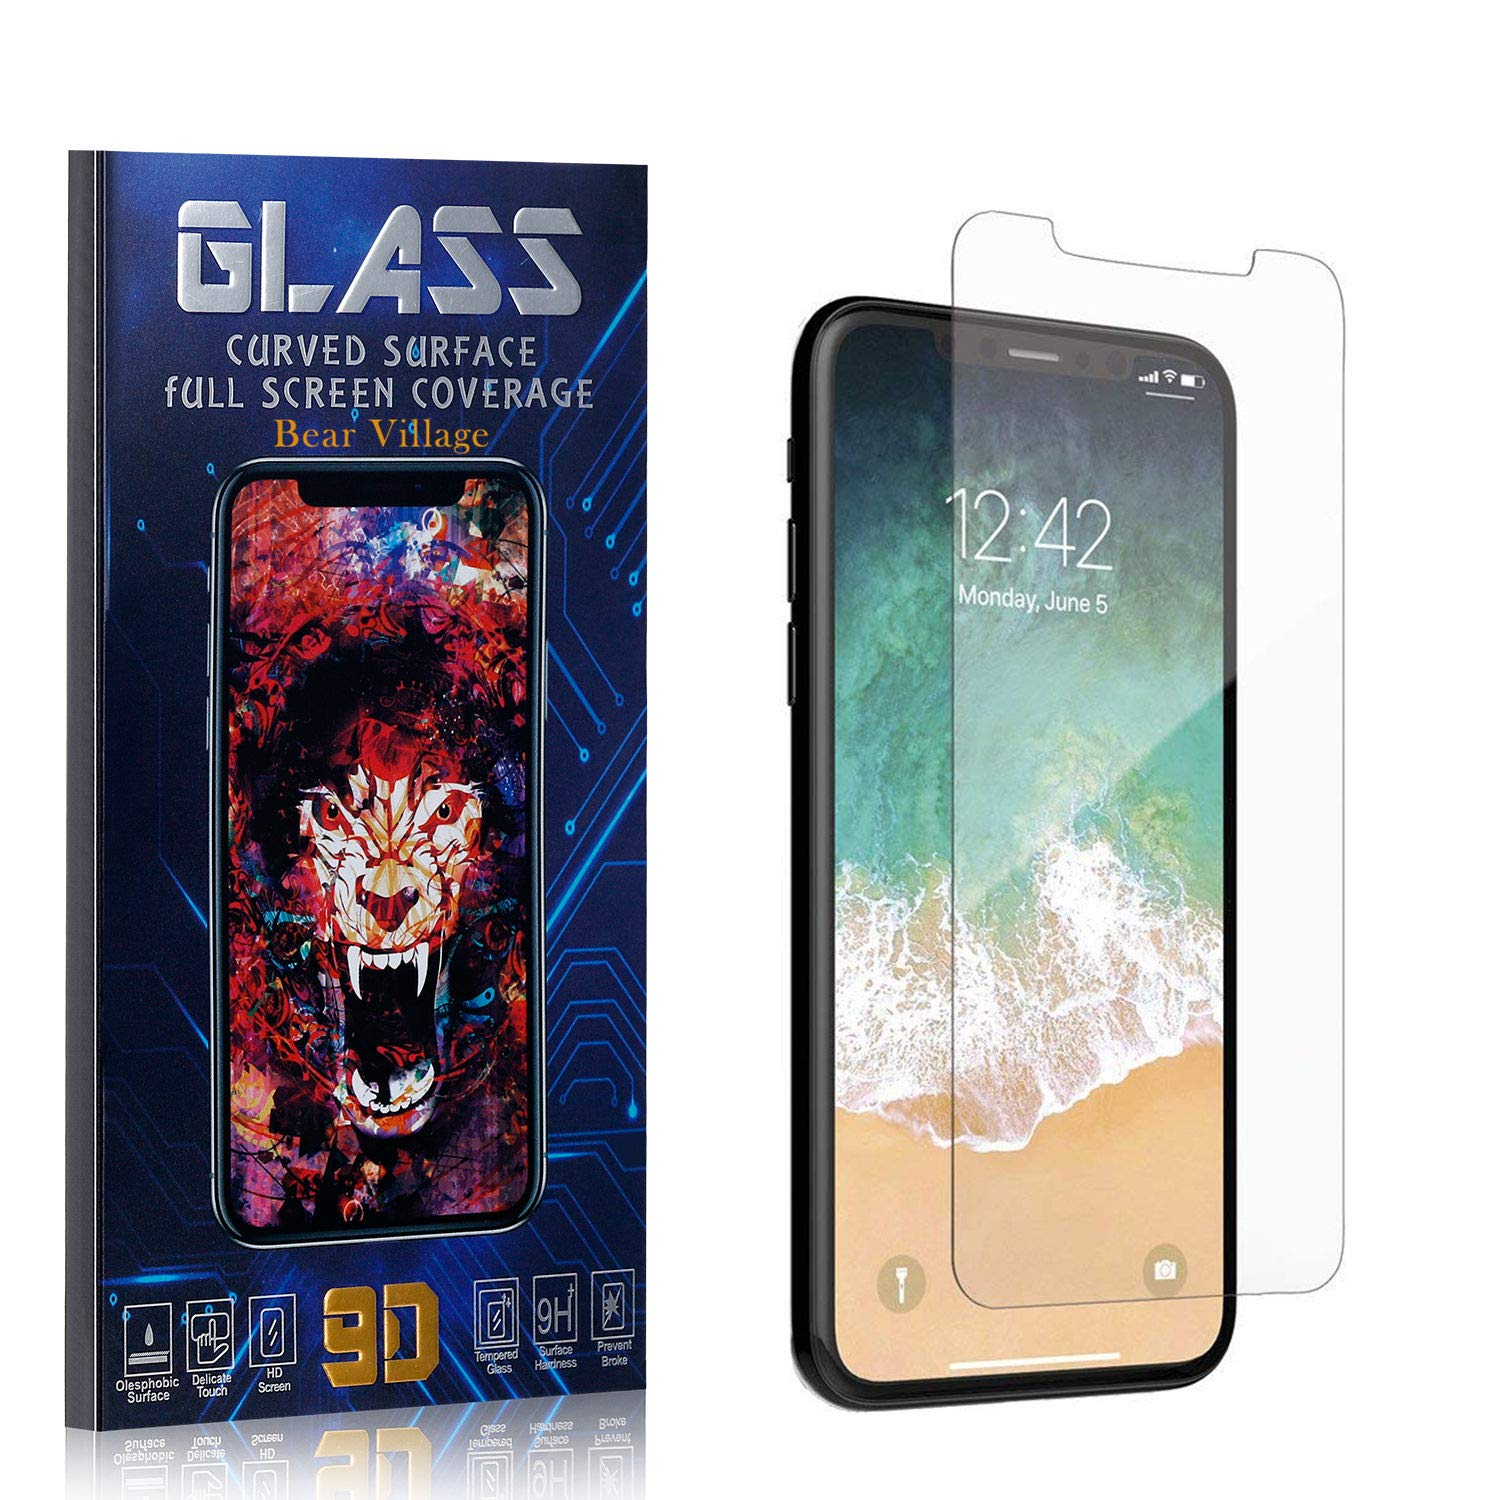 TEMPERED GLASS SCREEN PROTECTOR FOR IPHONE 11 PRO BEAR VILLAGE HD CRYSTAL CLEAR SCREEN PROTECTOR FILM FOR IPHONE 11 PRO BUBBLE FREE 9H HARDNESS 4 PACK